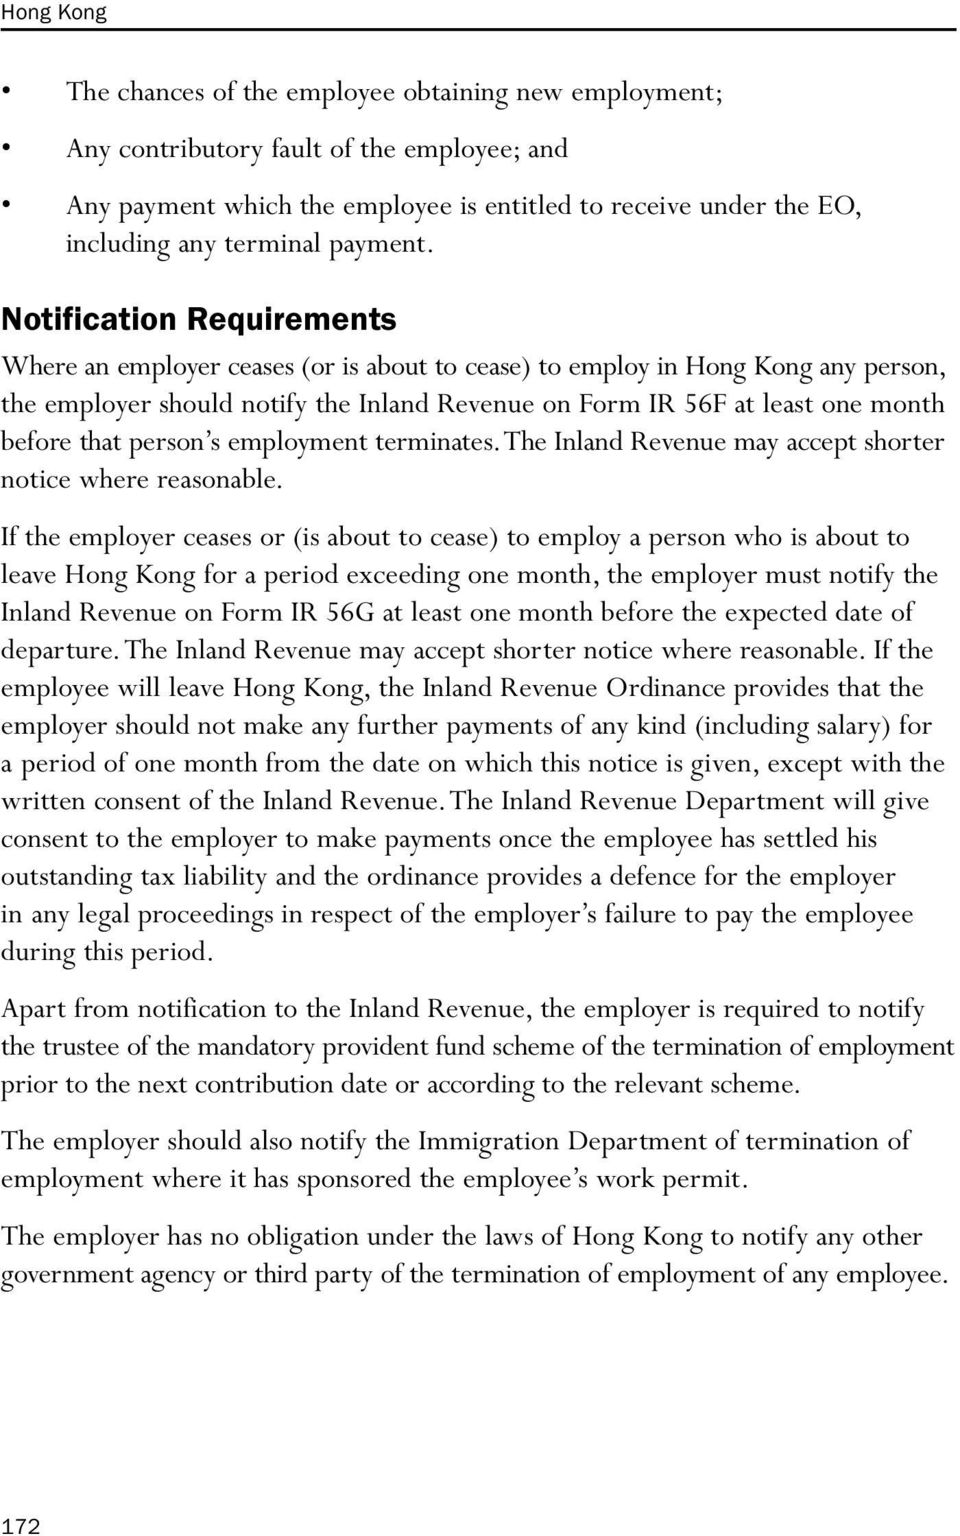 Notification Requirements Where an employer ceases (or is about to cease) to employ in Hong Kong any person, the employer should notify the Inland Revenue on Form IR 56F at least one month before